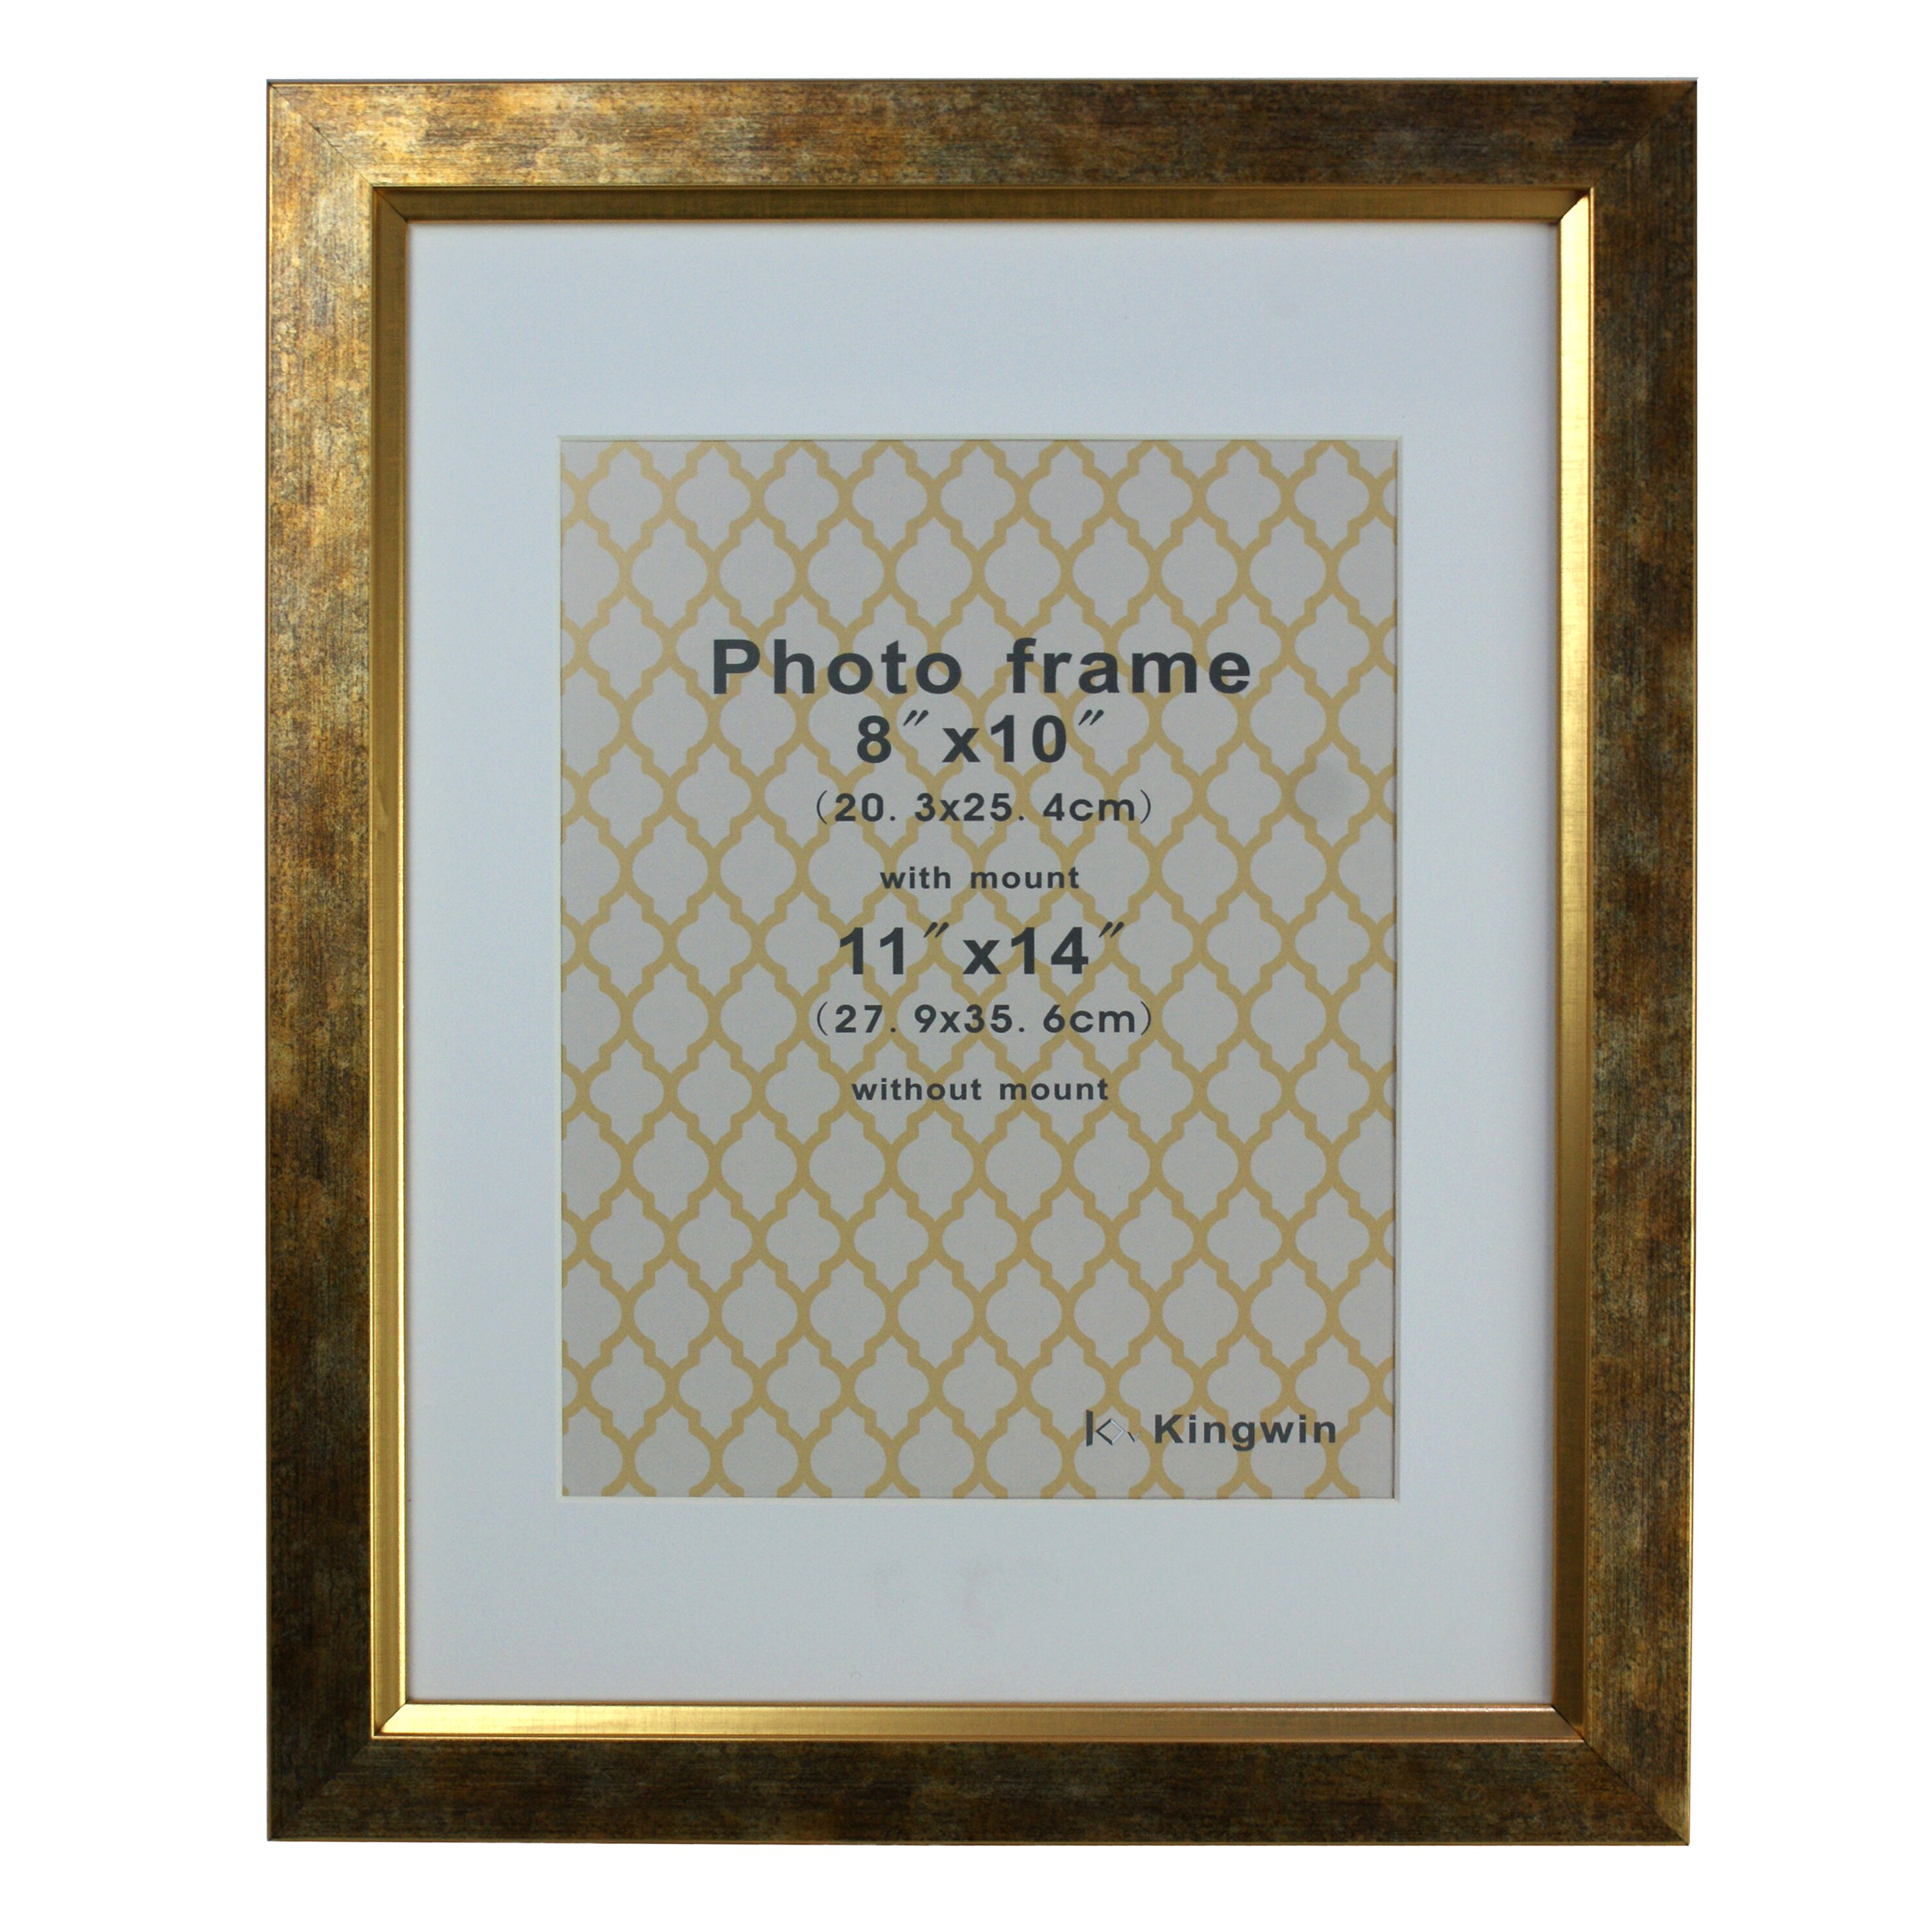 Kingwinhomedecor Picture Frame Reviews Wayfair